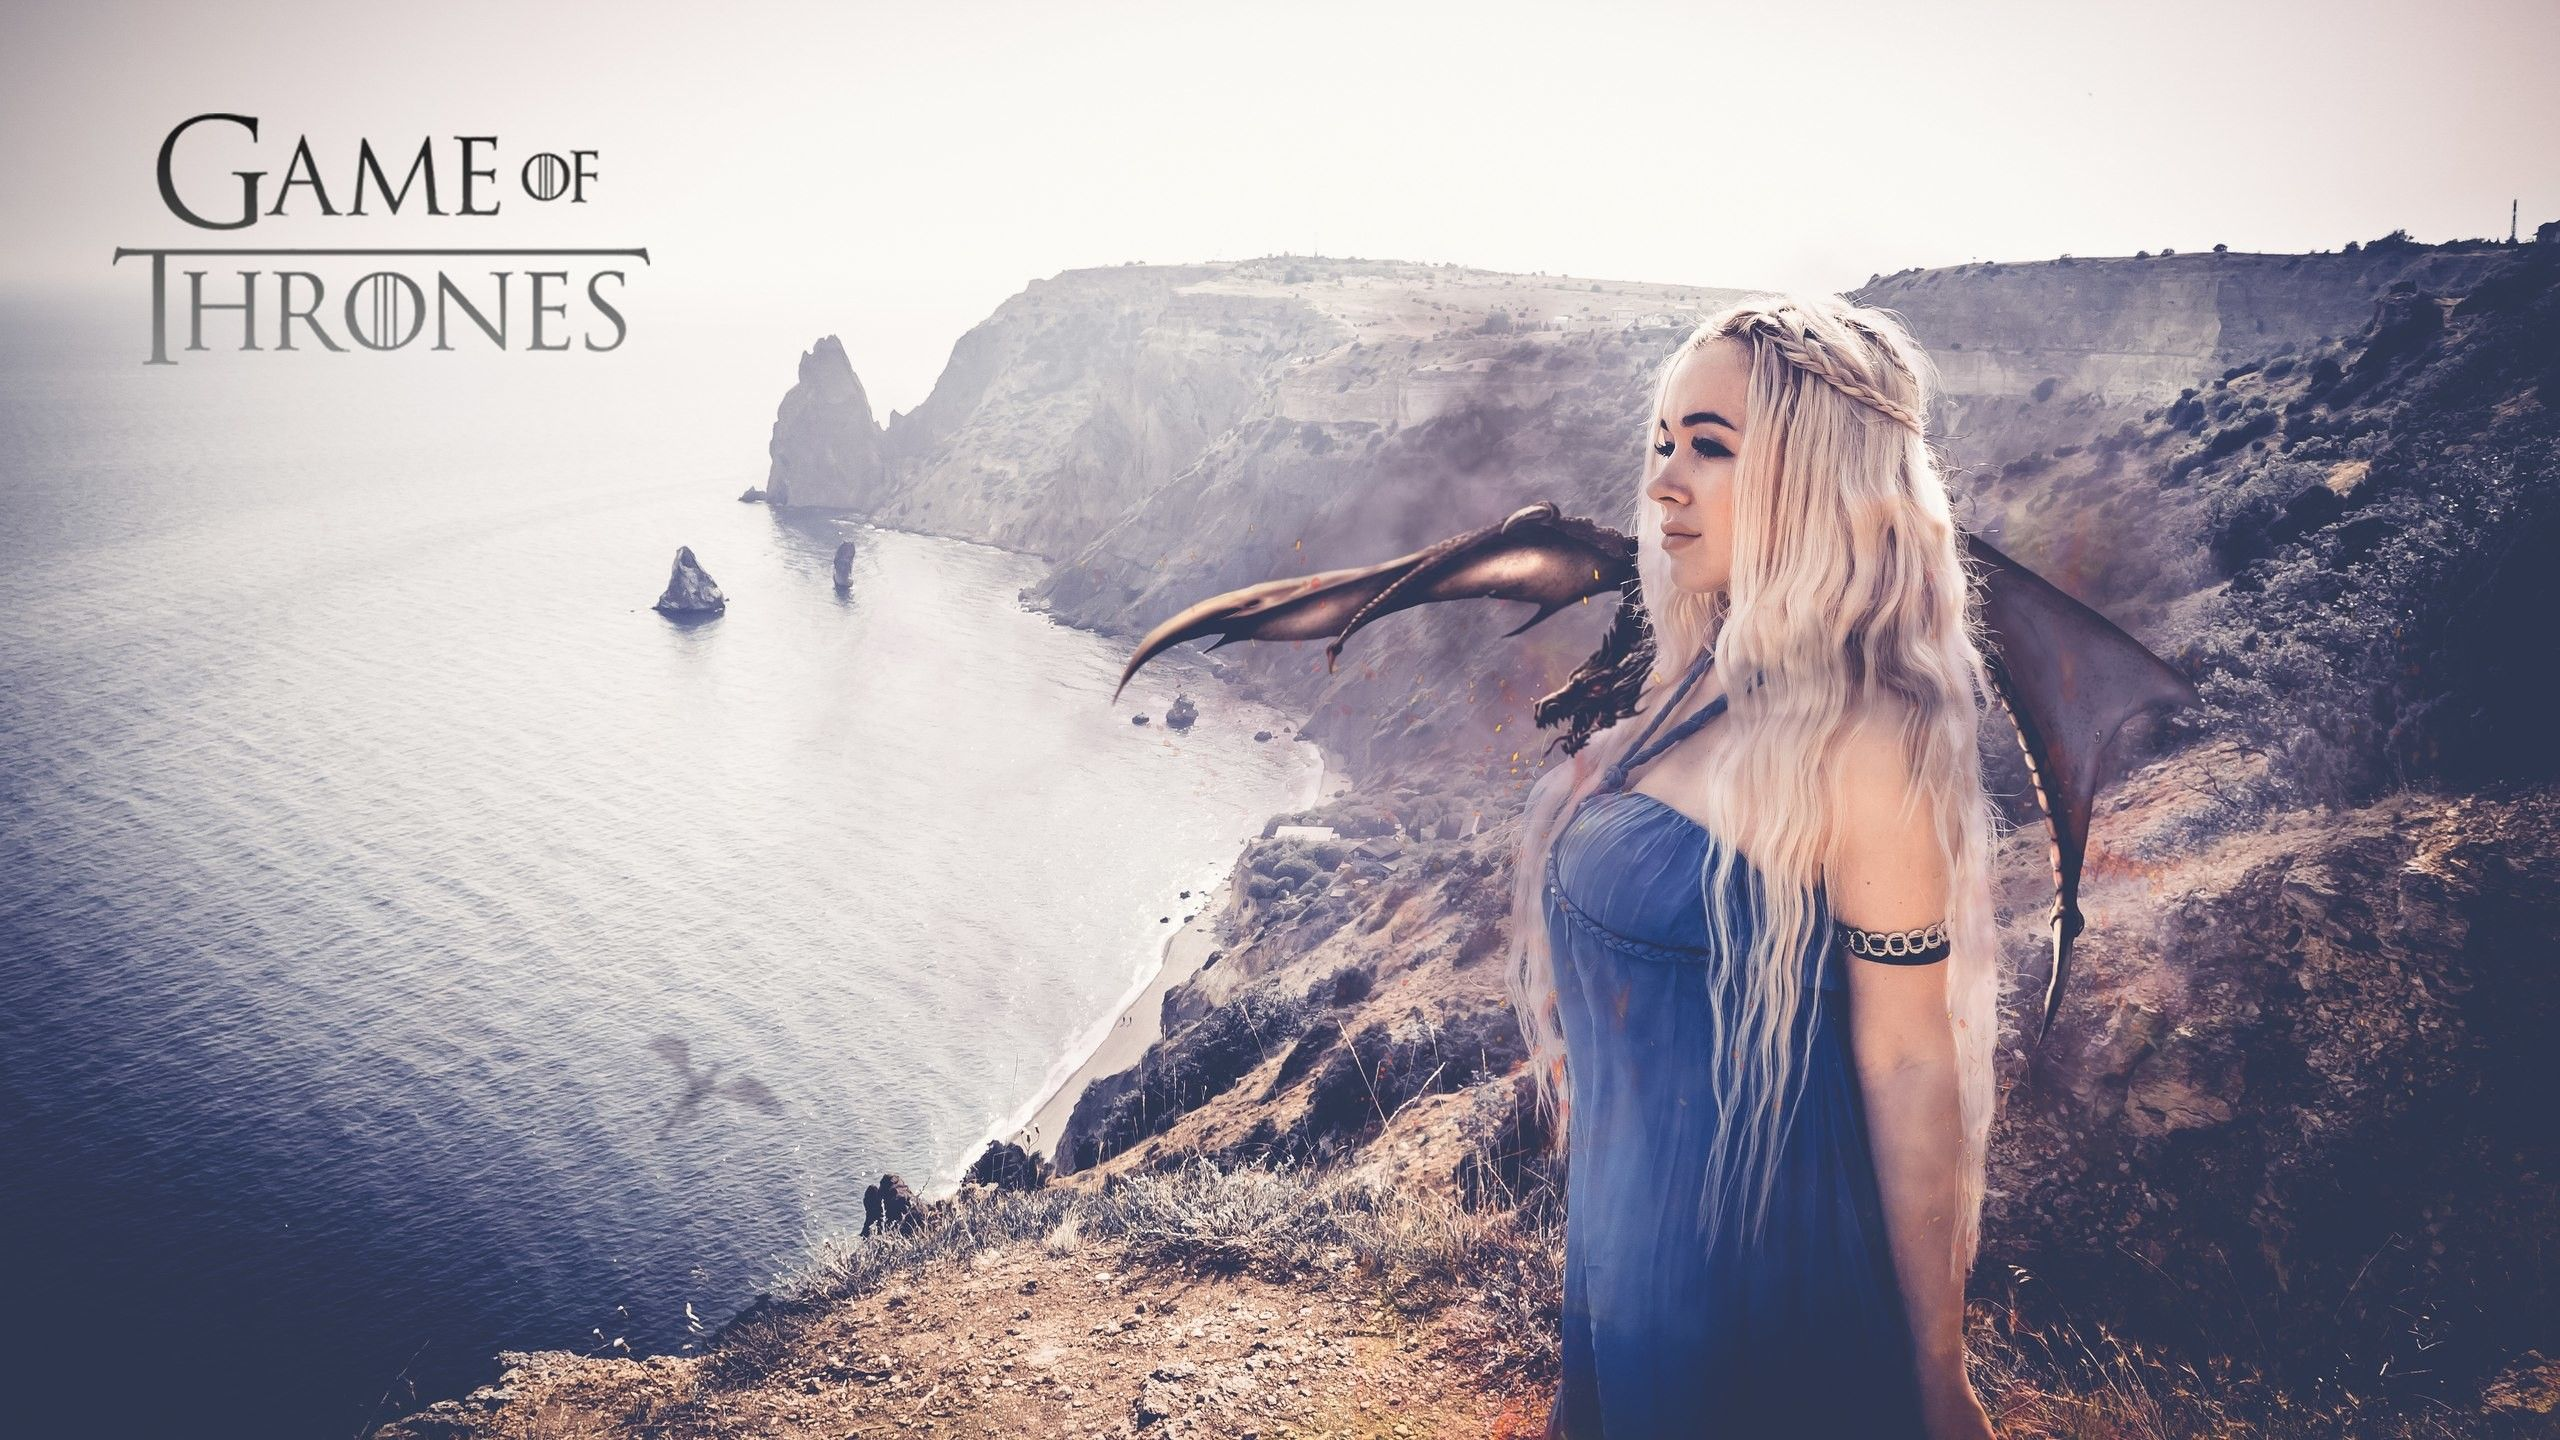 Game Of Thrones Khaleesi Wallpapers Top Free Game Of Thrones